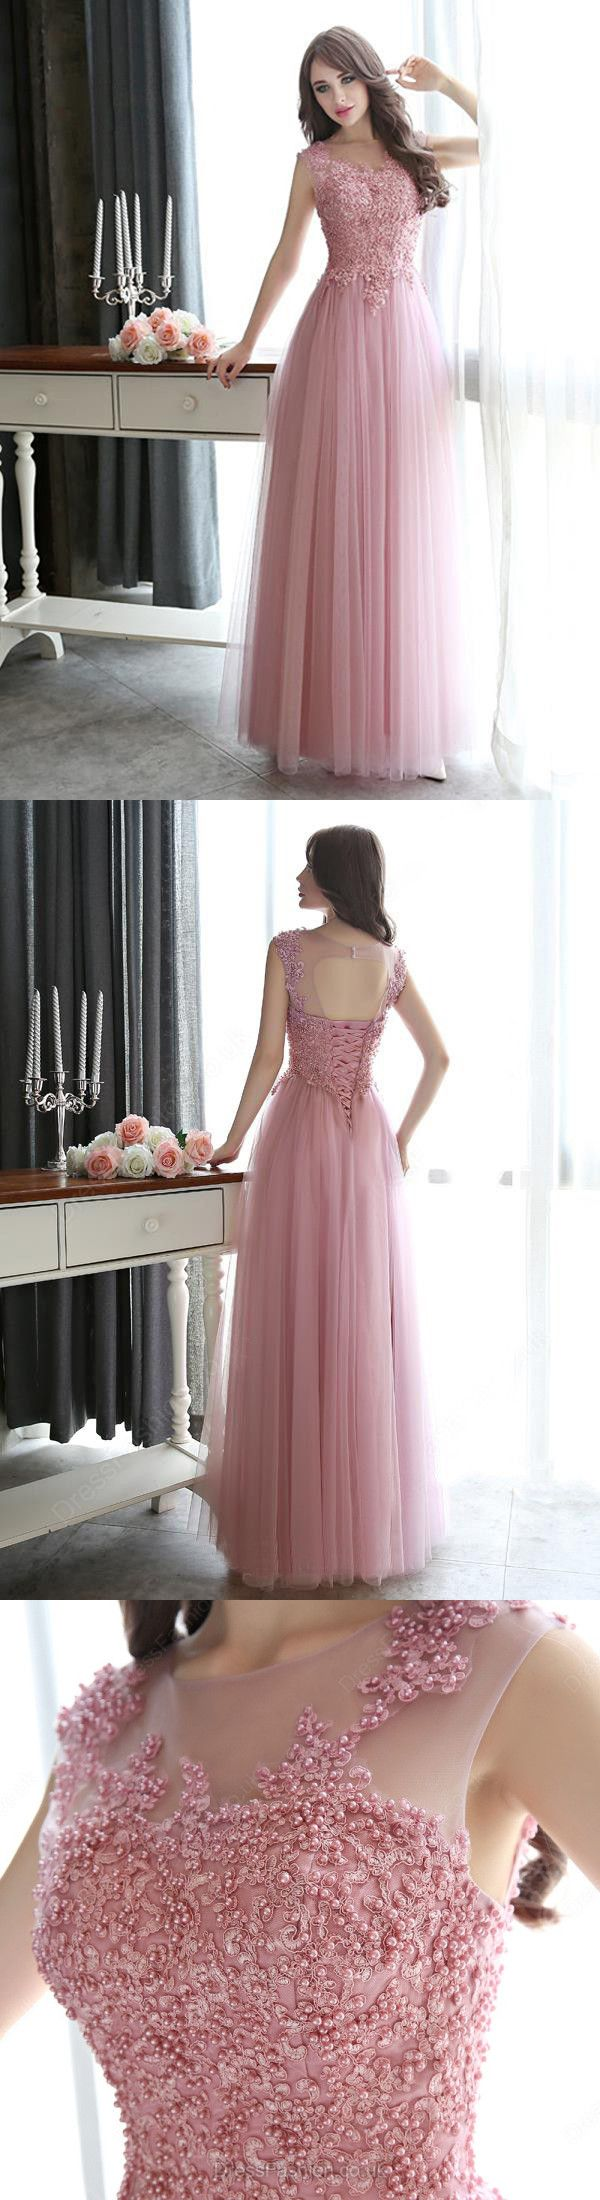 A-line Scoop Floor-length Sleeveless Tulle Prom Dress/Evening Dress # VB557 #tulle #pink #pear pink #fashion #long #prom #popular #A-line #evening #Appliques